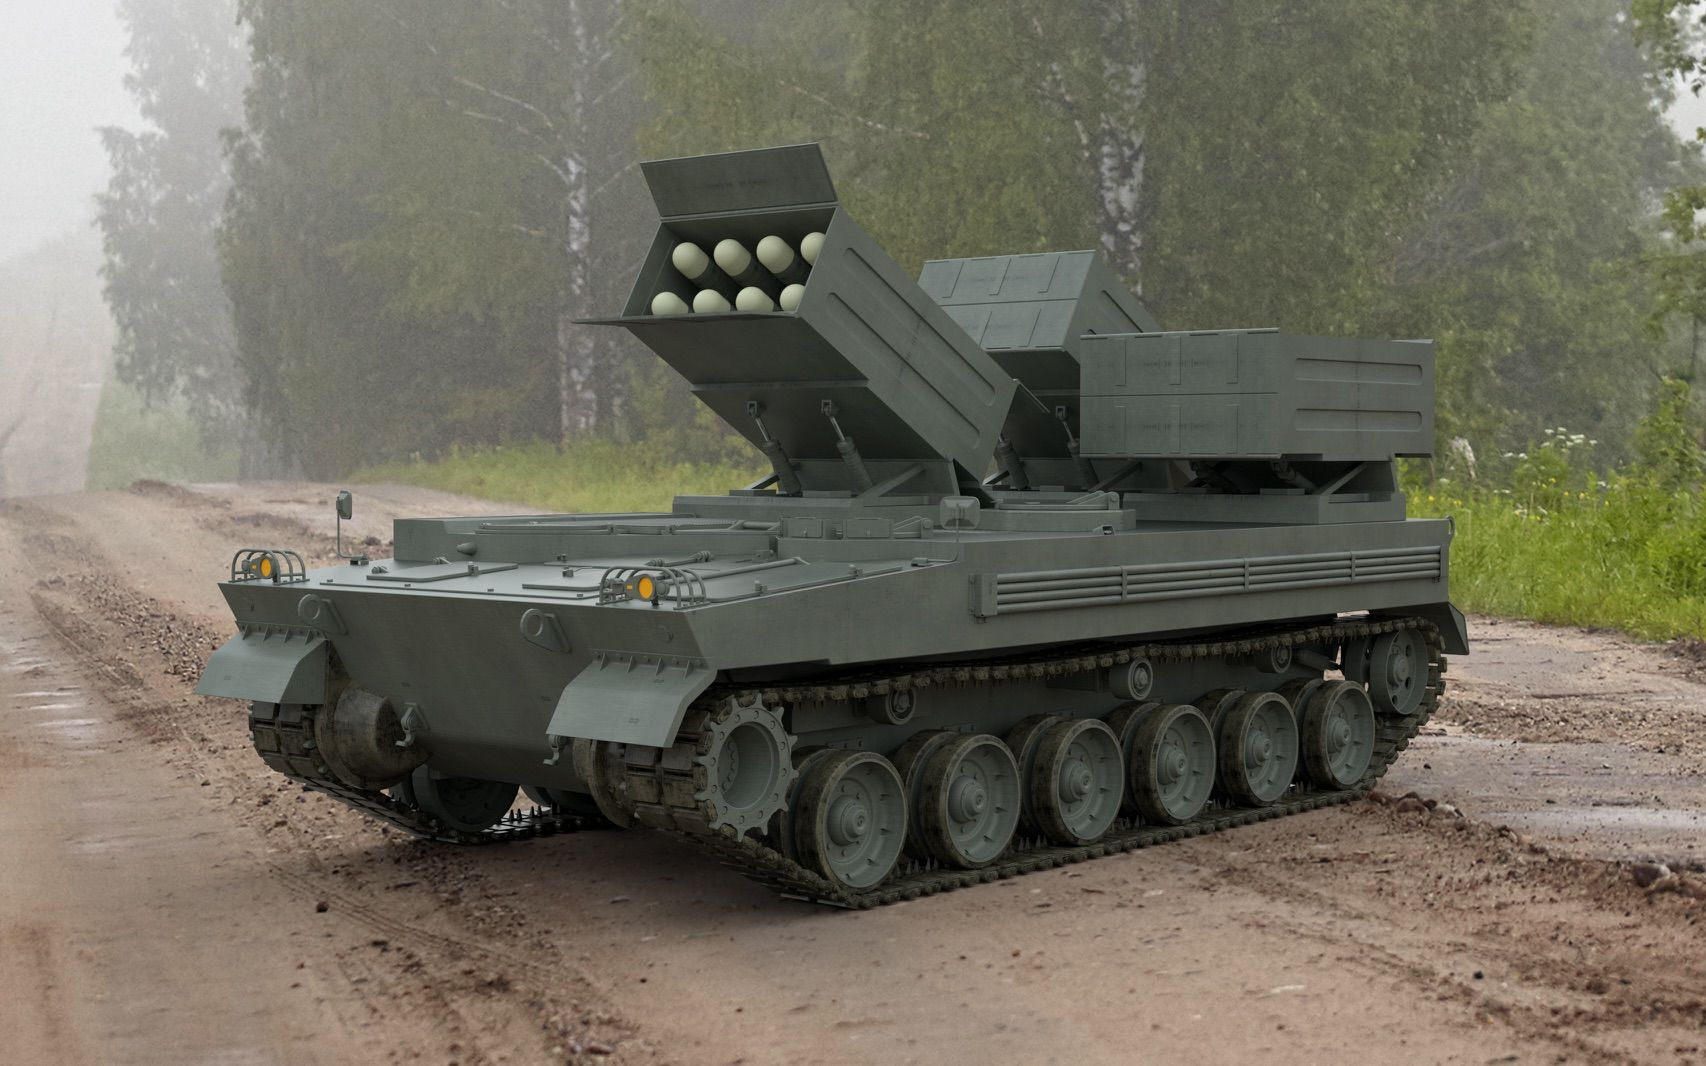 This Destroyer Concept Is a Tank Battalion's Worst Nightmare